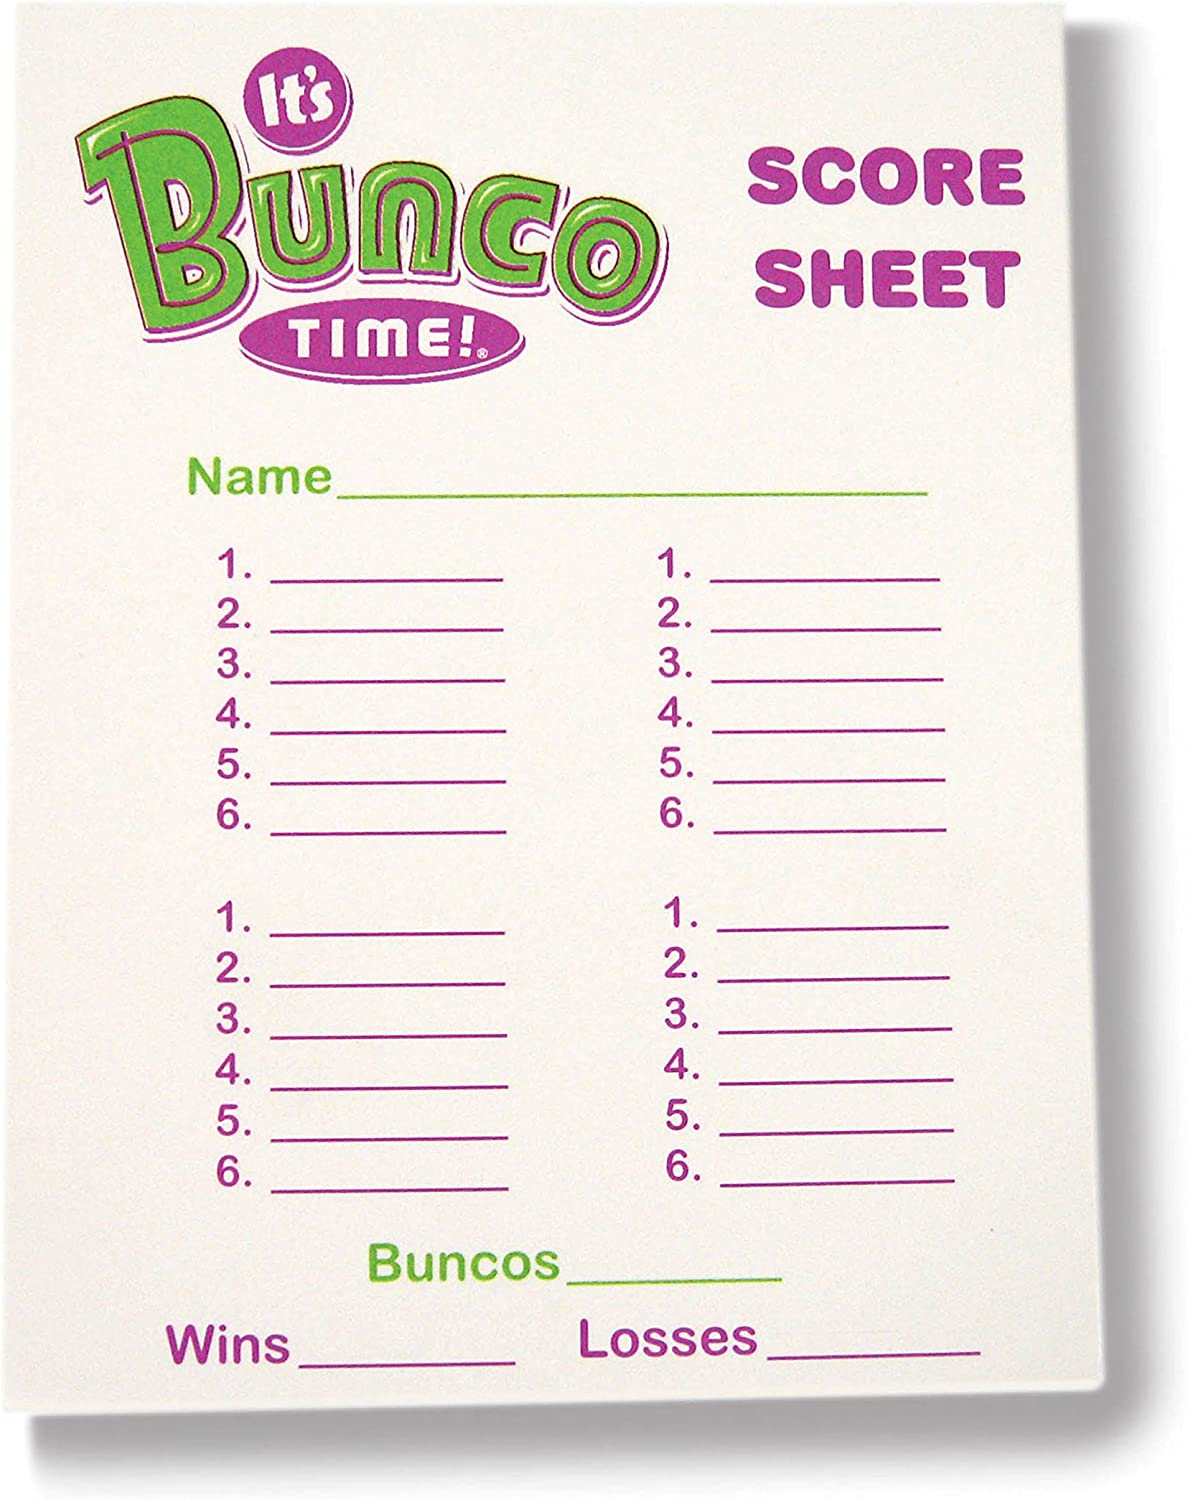 This is an image of Terrible Printable Bunco Sheets